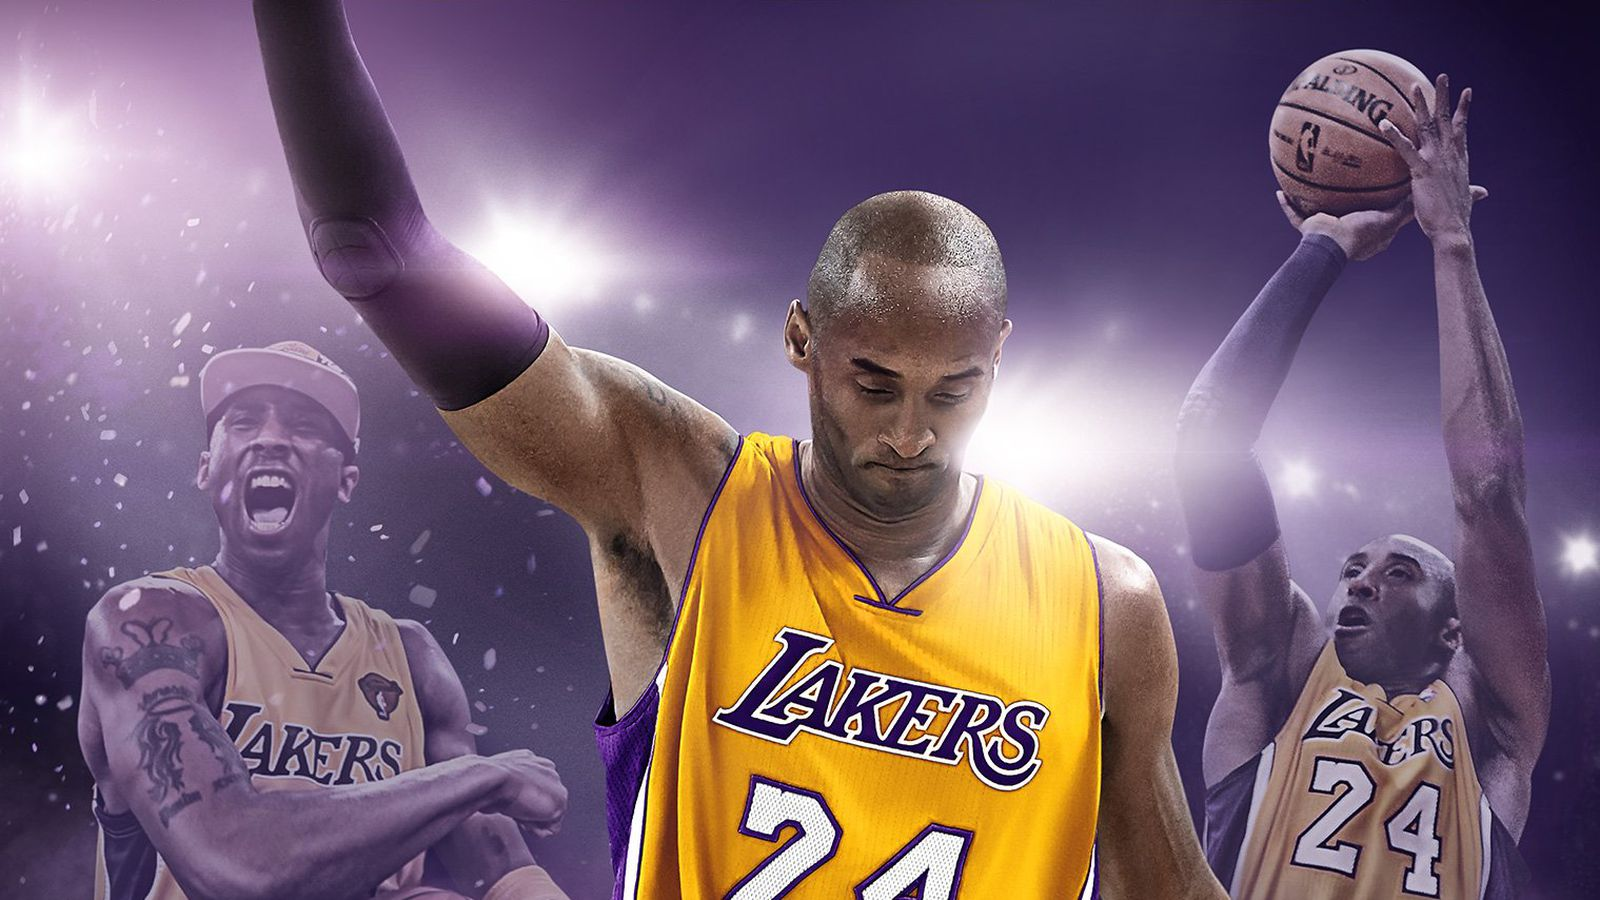 NBA 2K17 Honors Kobe Bryant With 'Legend Edition' This